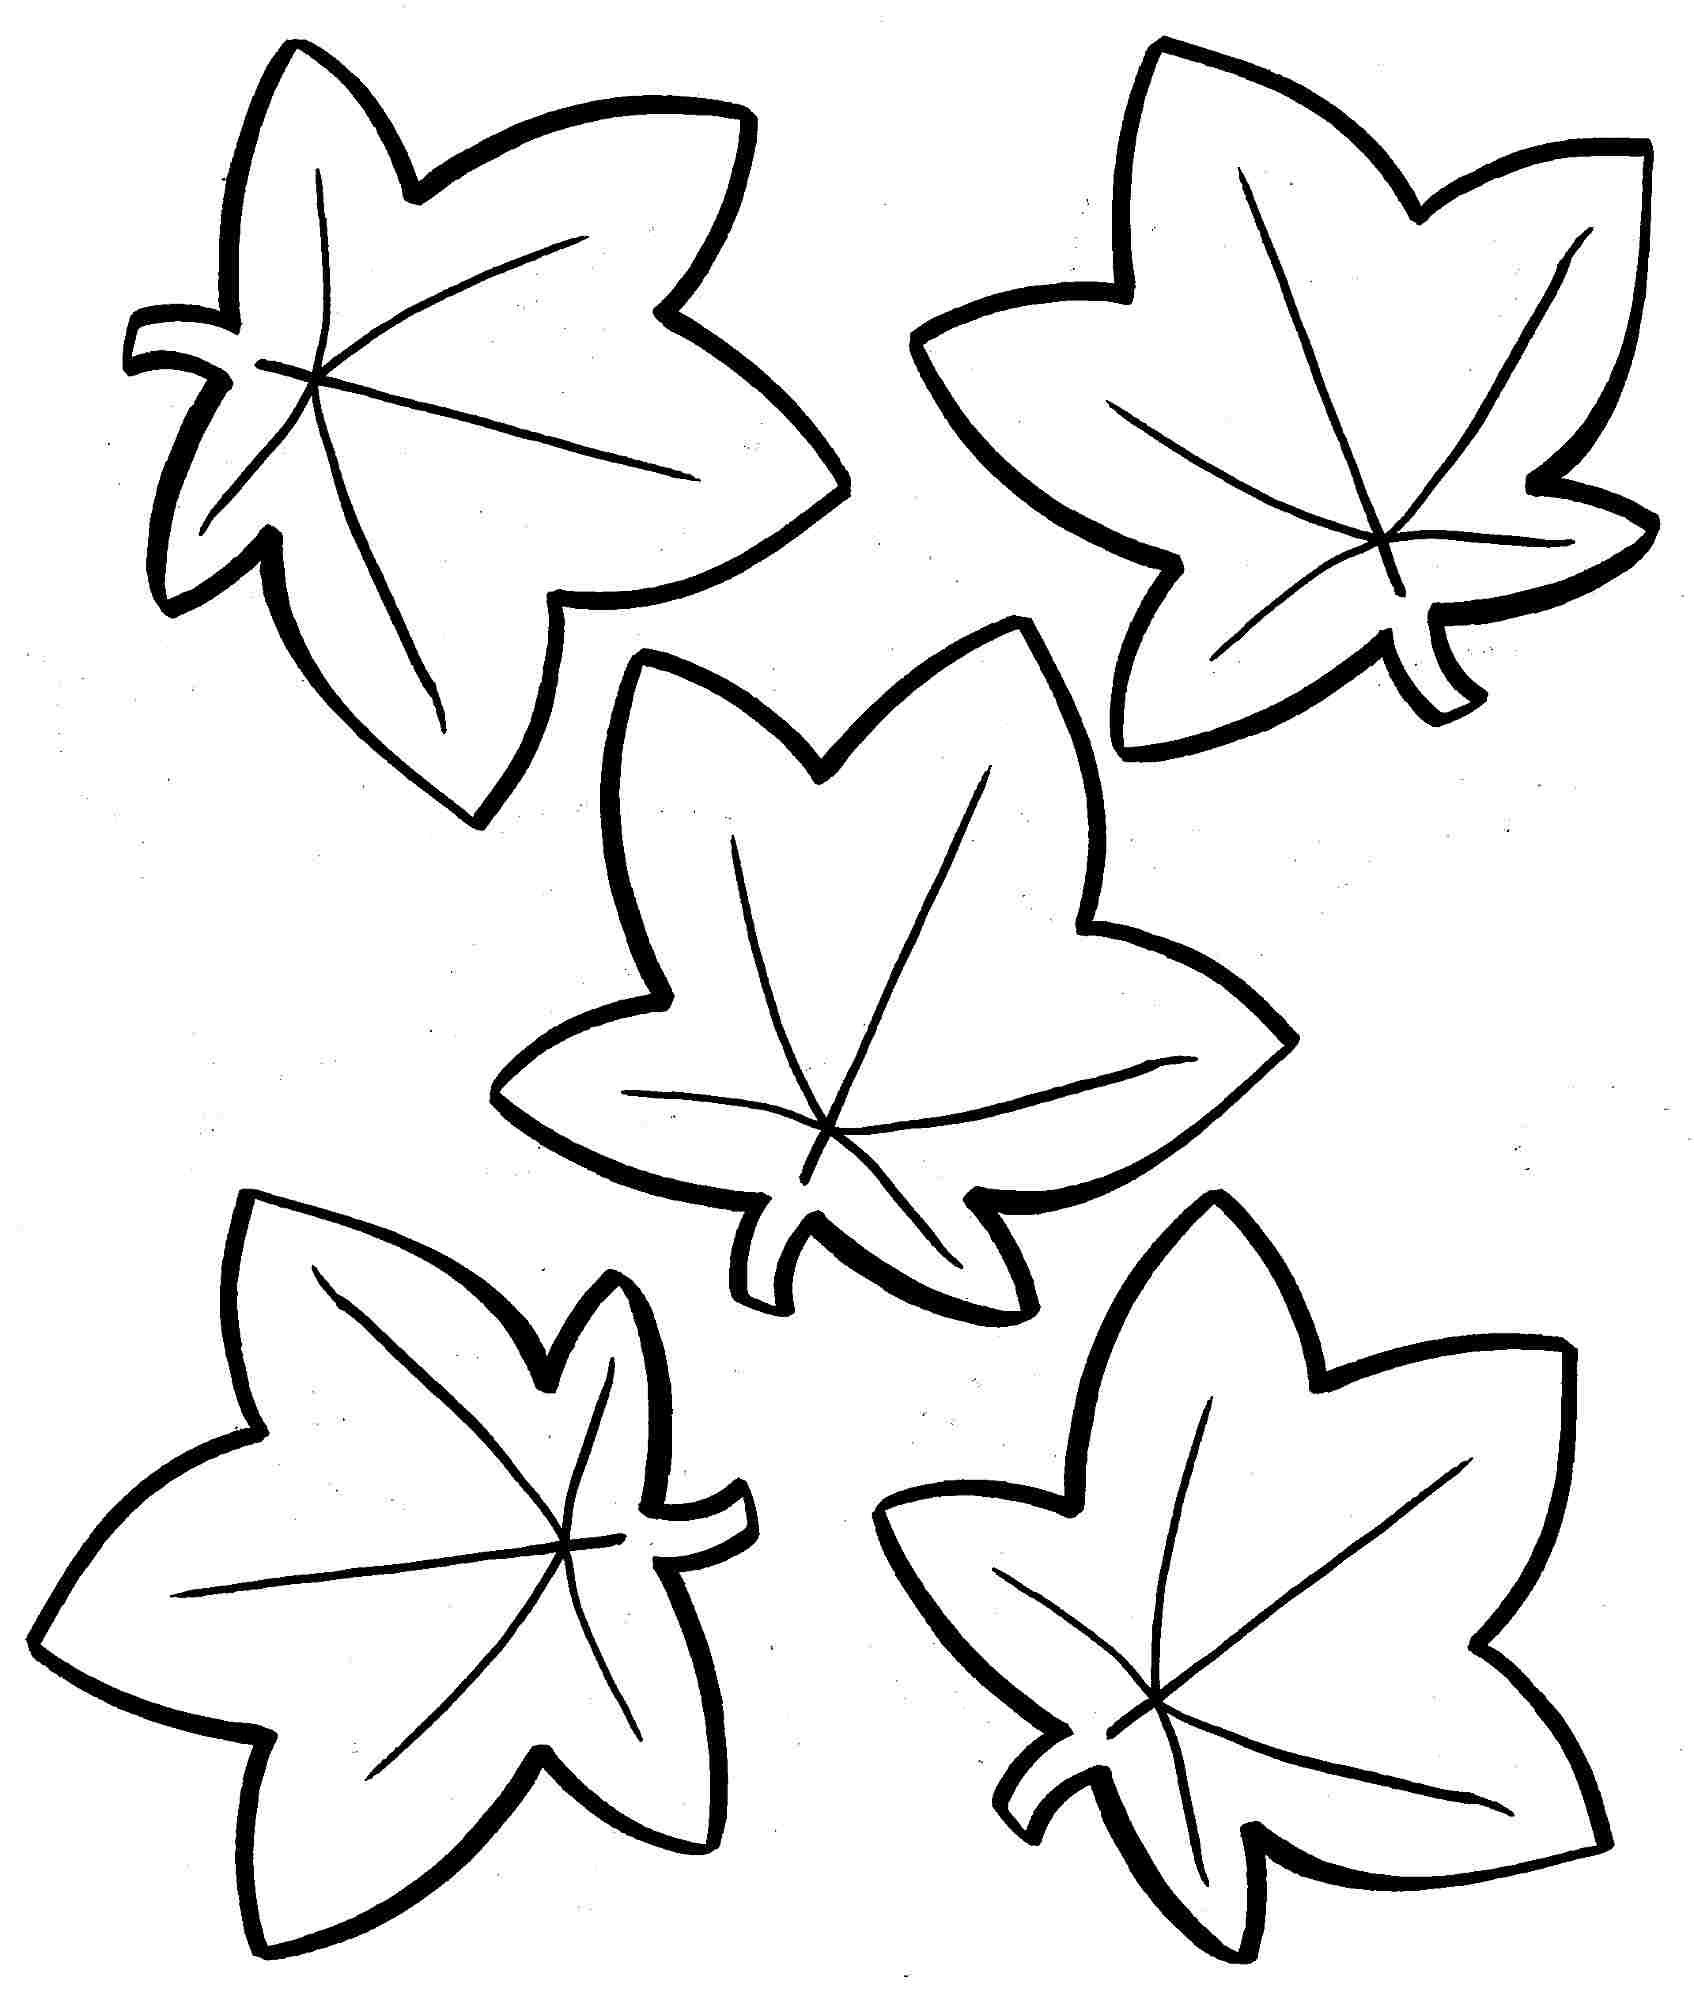 Adult Beauty Printable Autumn Coloring Pages Images cute jumping into leaves printable coloring page fall pages free az gallery images